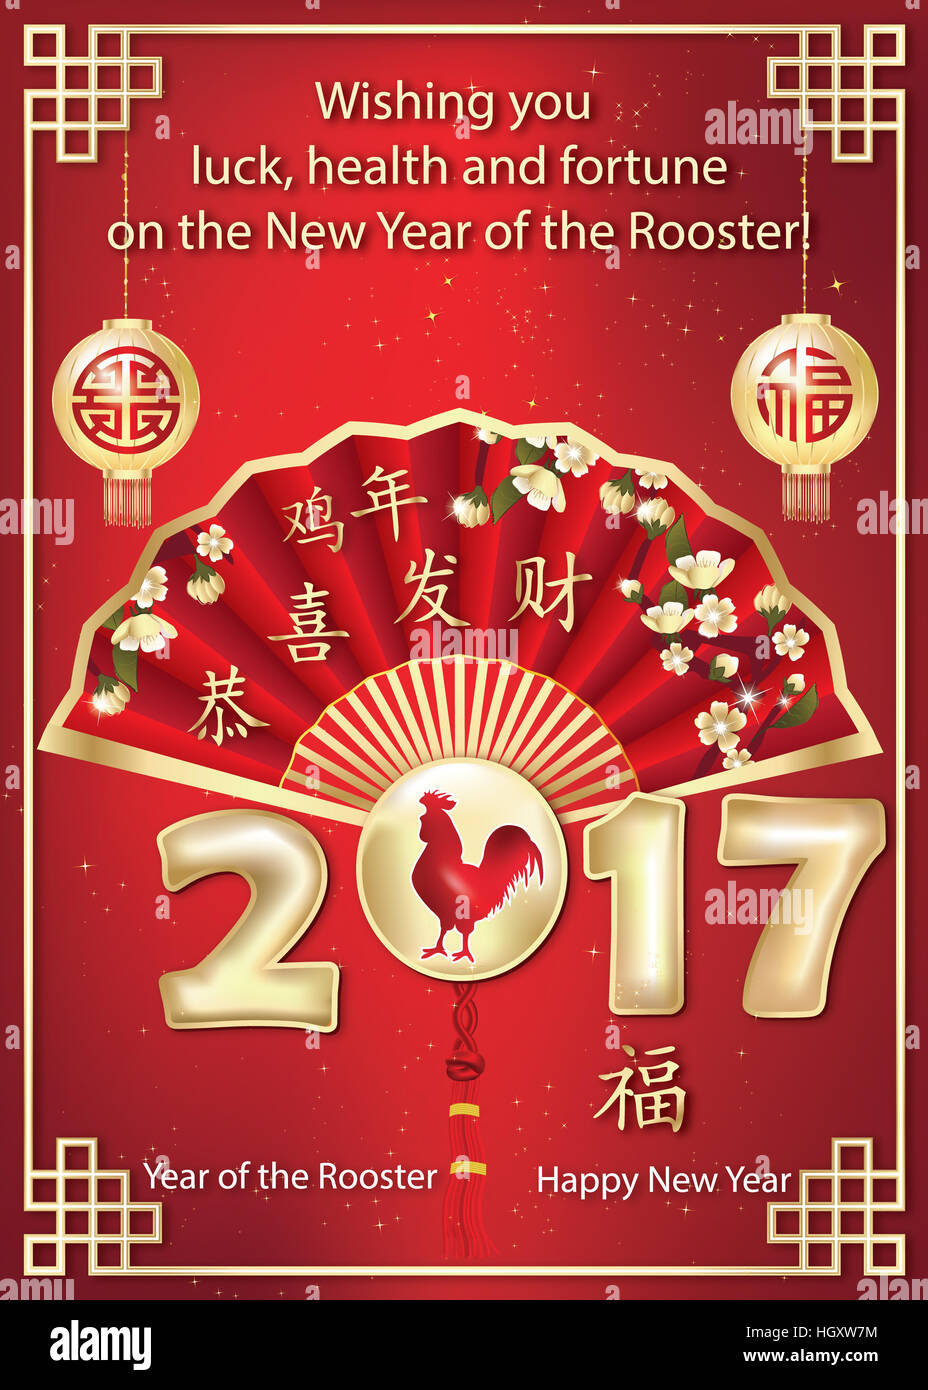 printable chinese new year greeting card 2017 chinese wishes congratulations and prosperity gong xi fa cai year of rooster